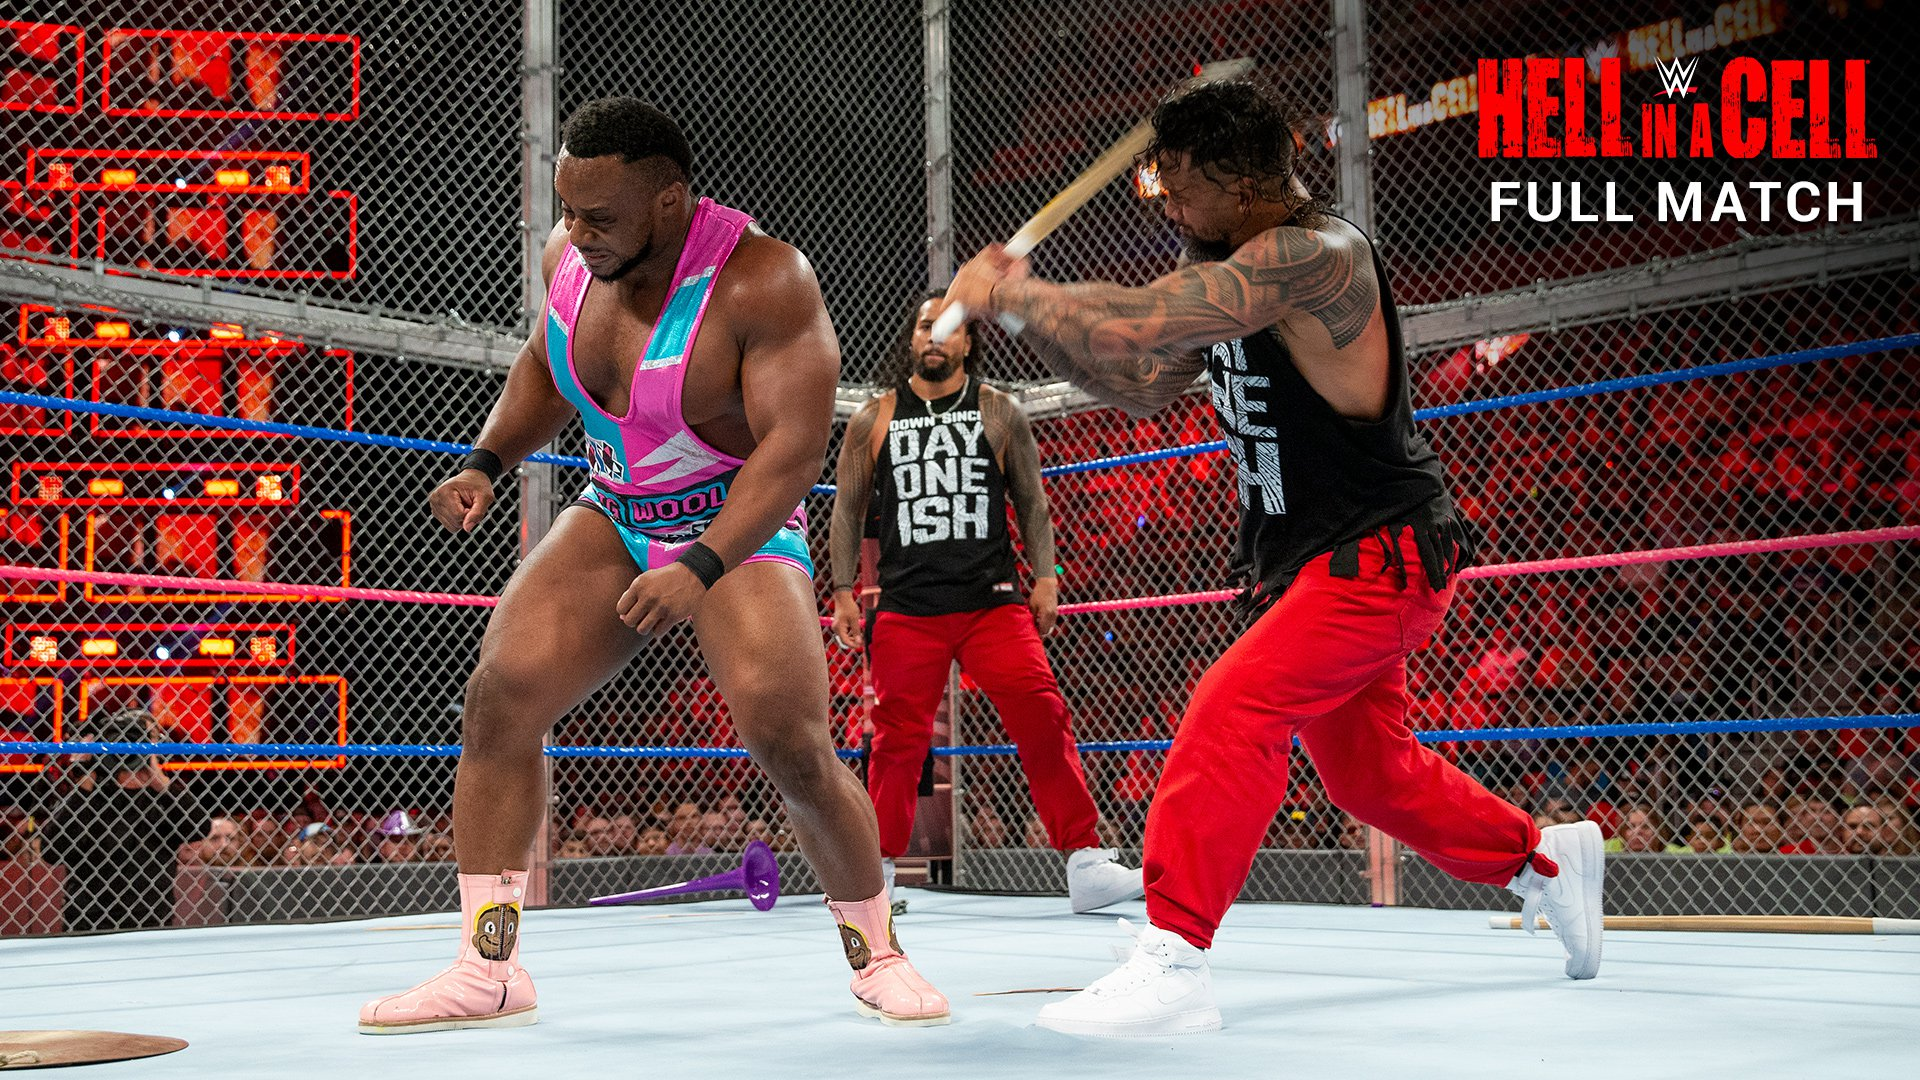 The New Day vs. The Usos - SmackDown Tag Team Title Match: WWE Hell in a Cell 2017 (Full Match - WWE Network Exclusive)